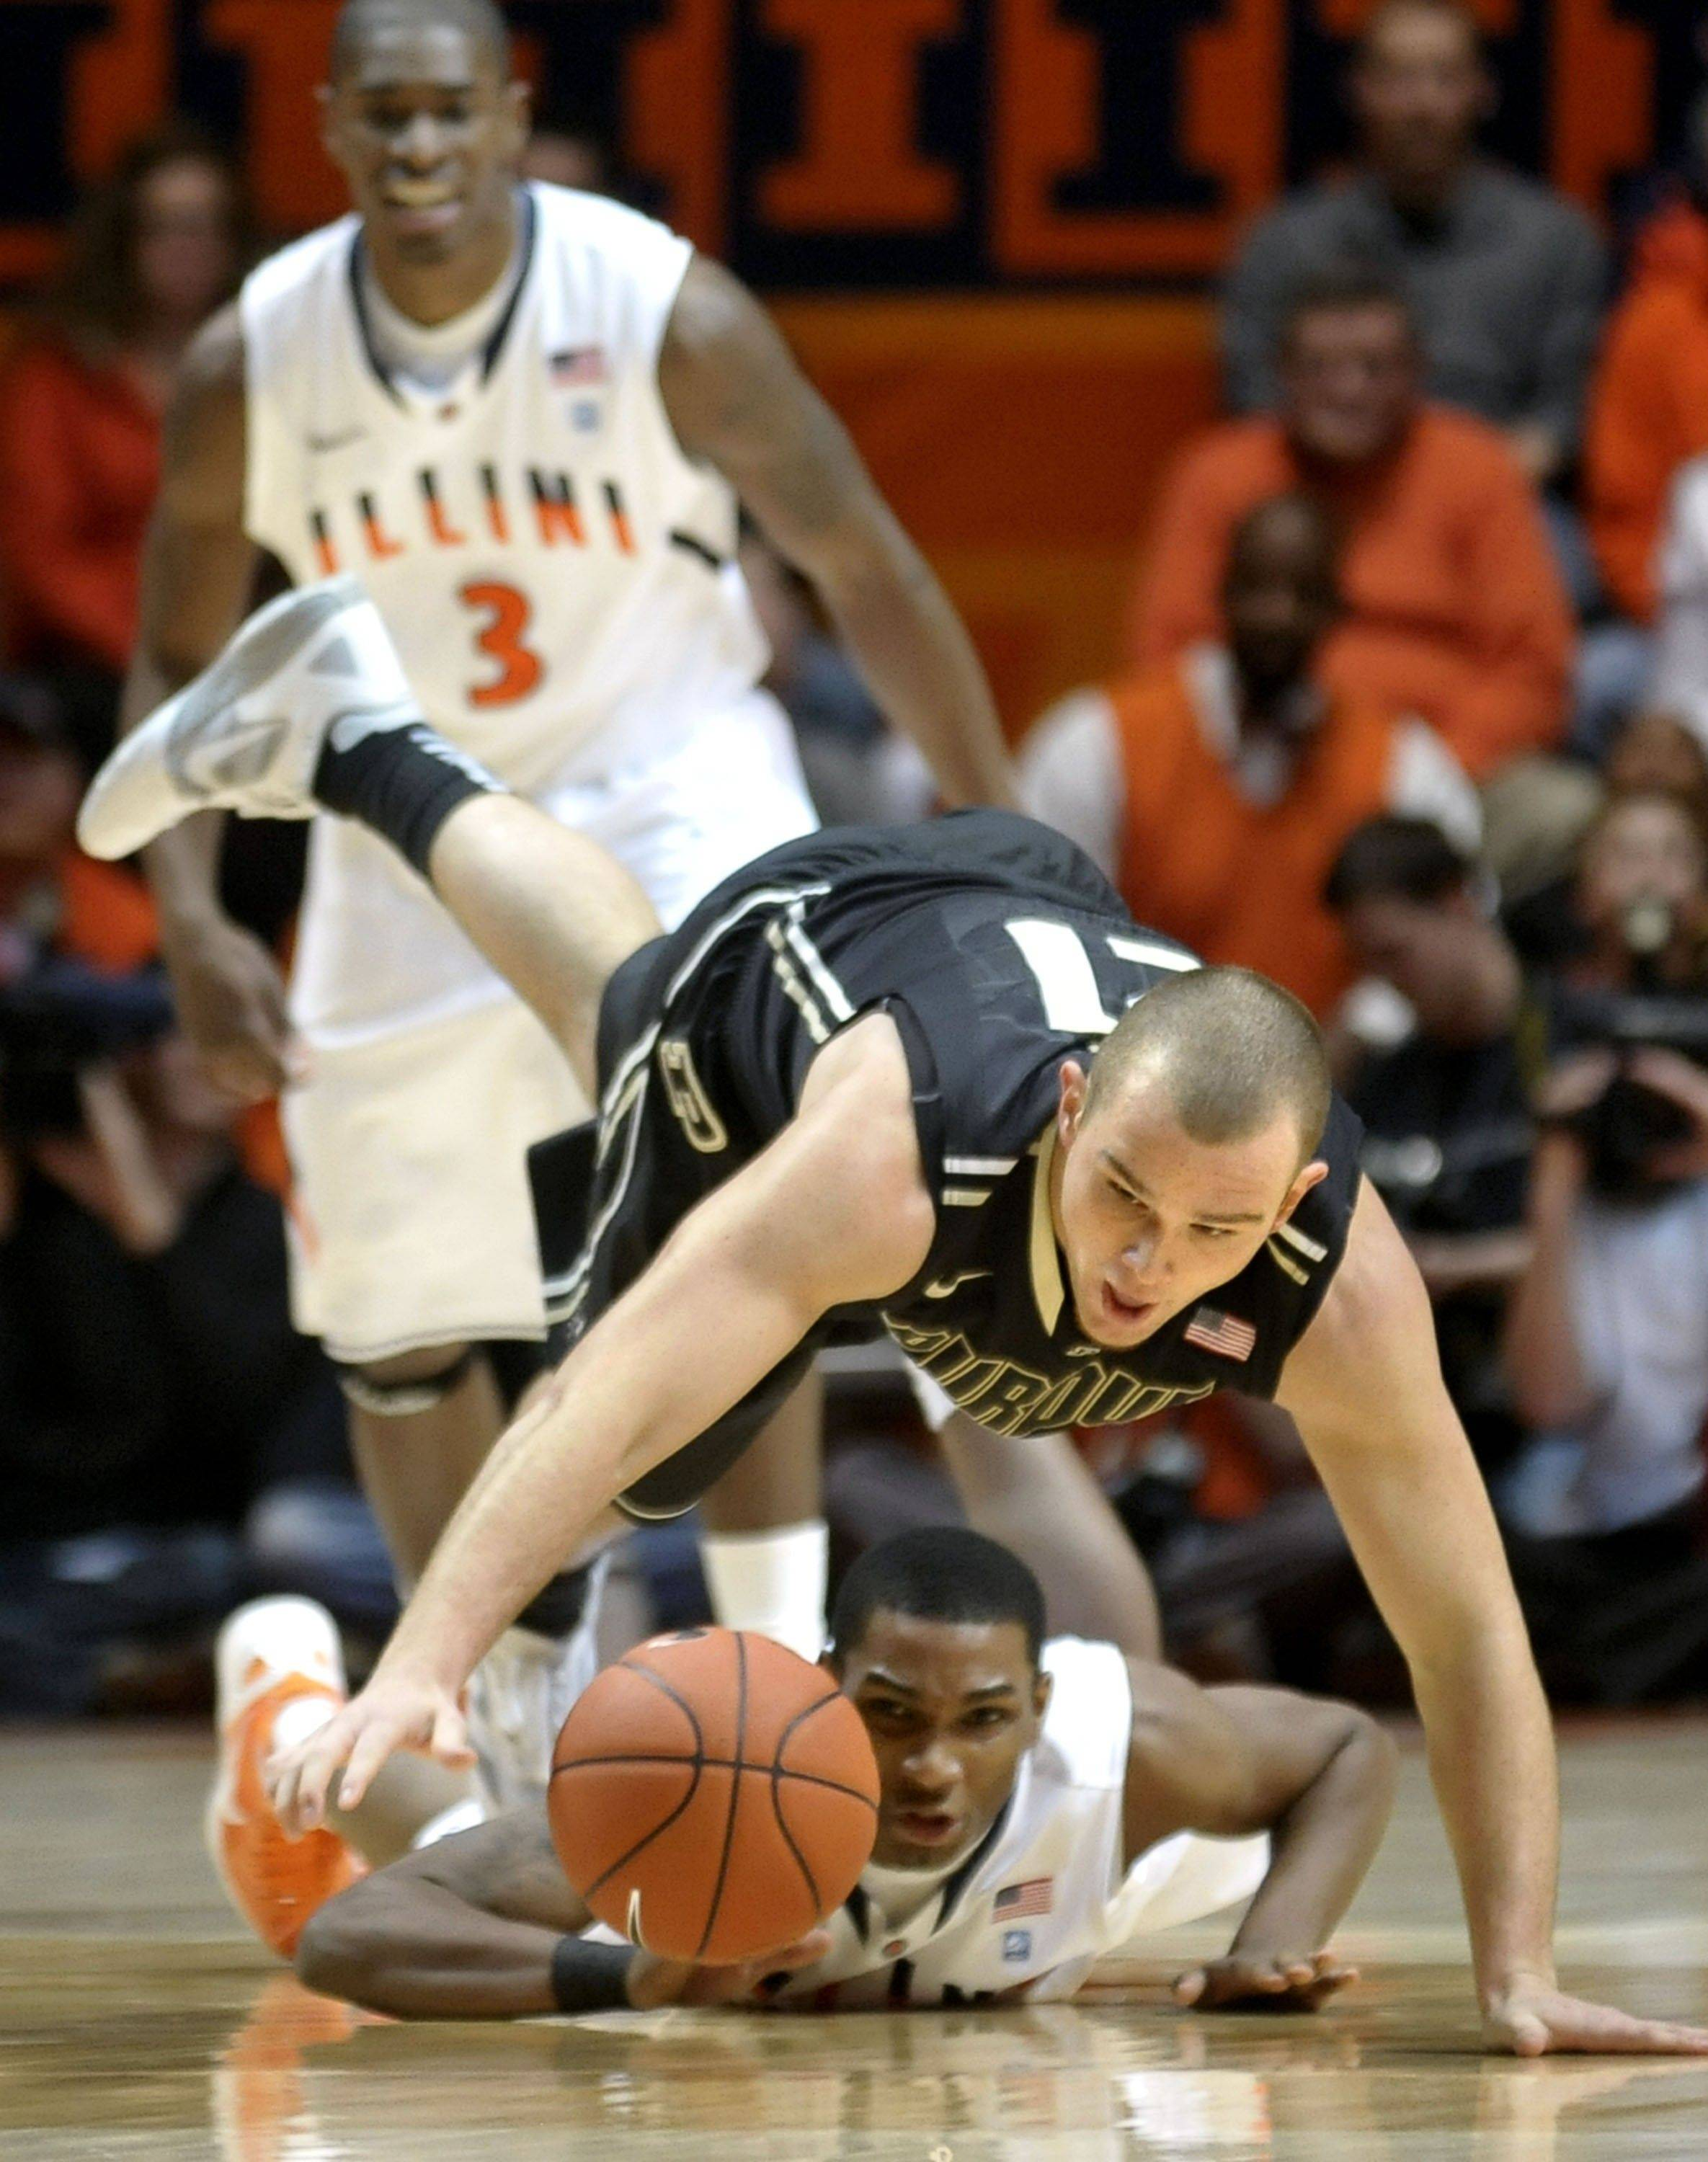 Illini stumble down the stretch, lose to Purdue